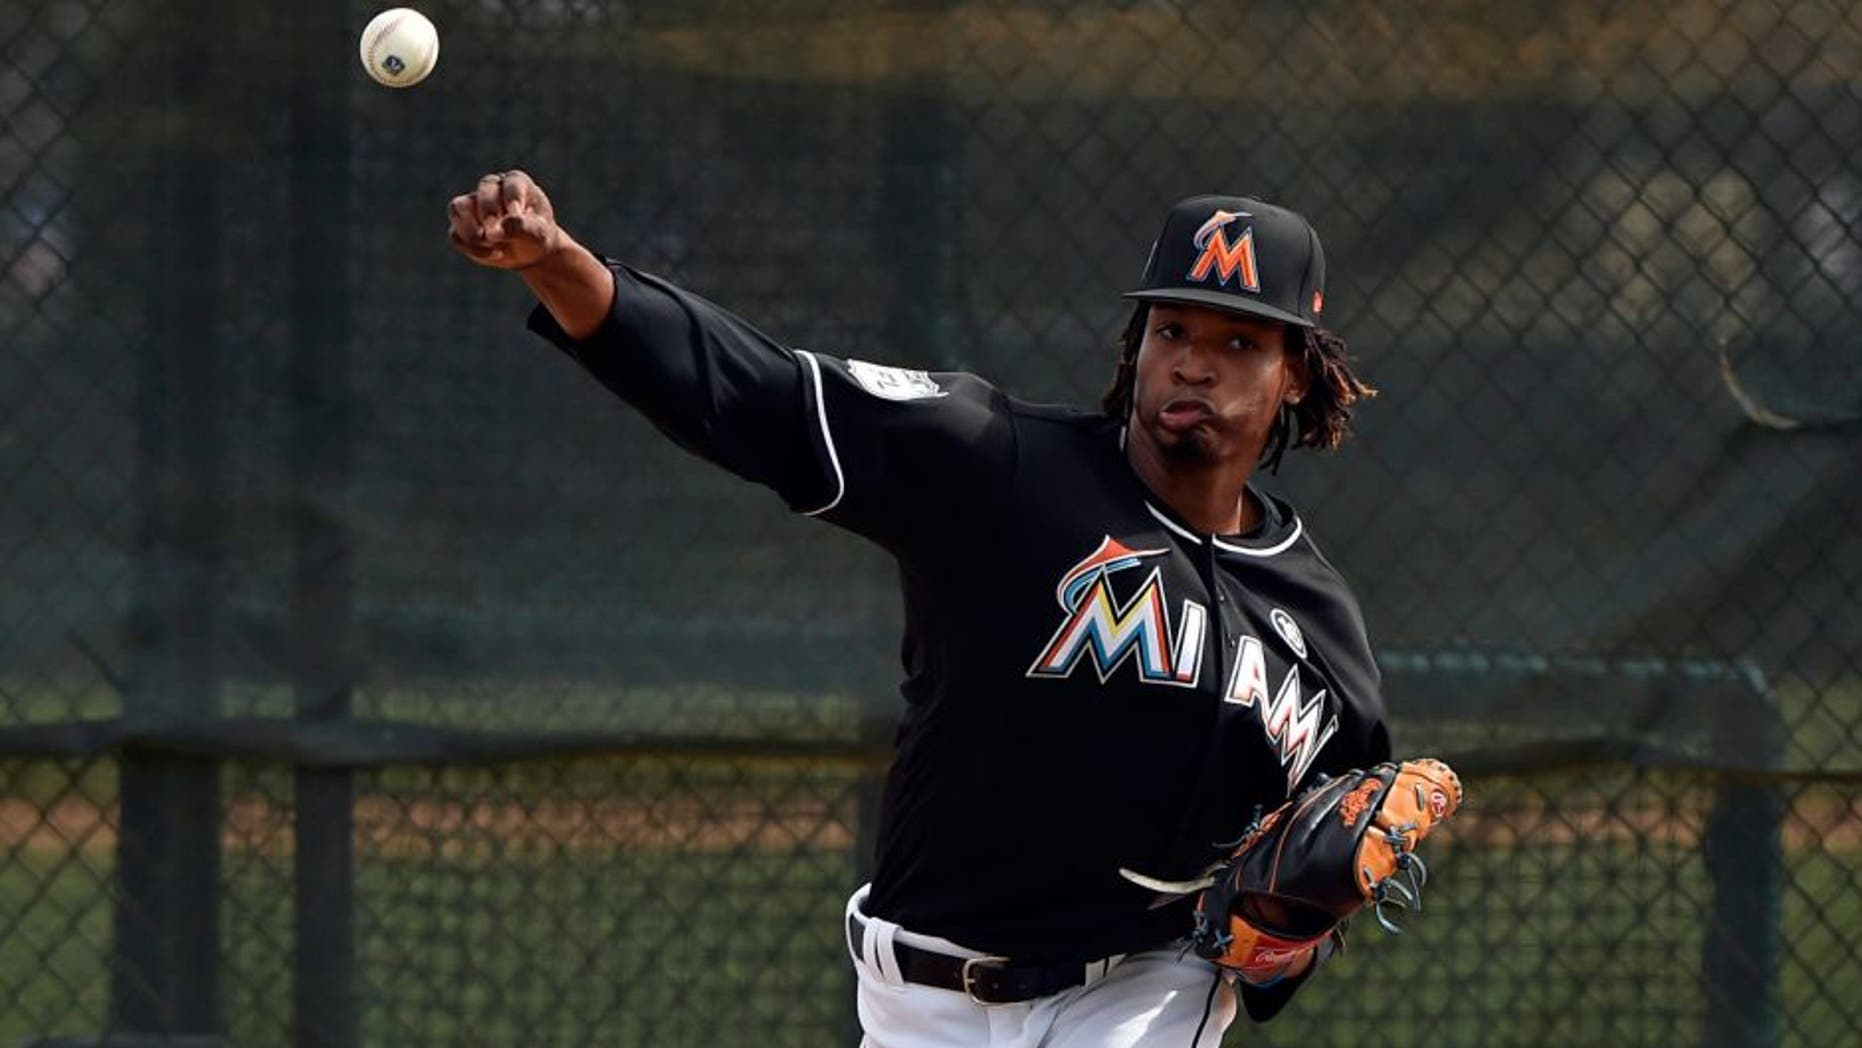 Feb 16, 2017; Ju, FL, USA; Miami Marlins relief pitcher Jose Urena (62) throws during spring training drills at Roger Dean Stadium. Mandatory Credit: Steve Mitchell-USA TODAY Sports